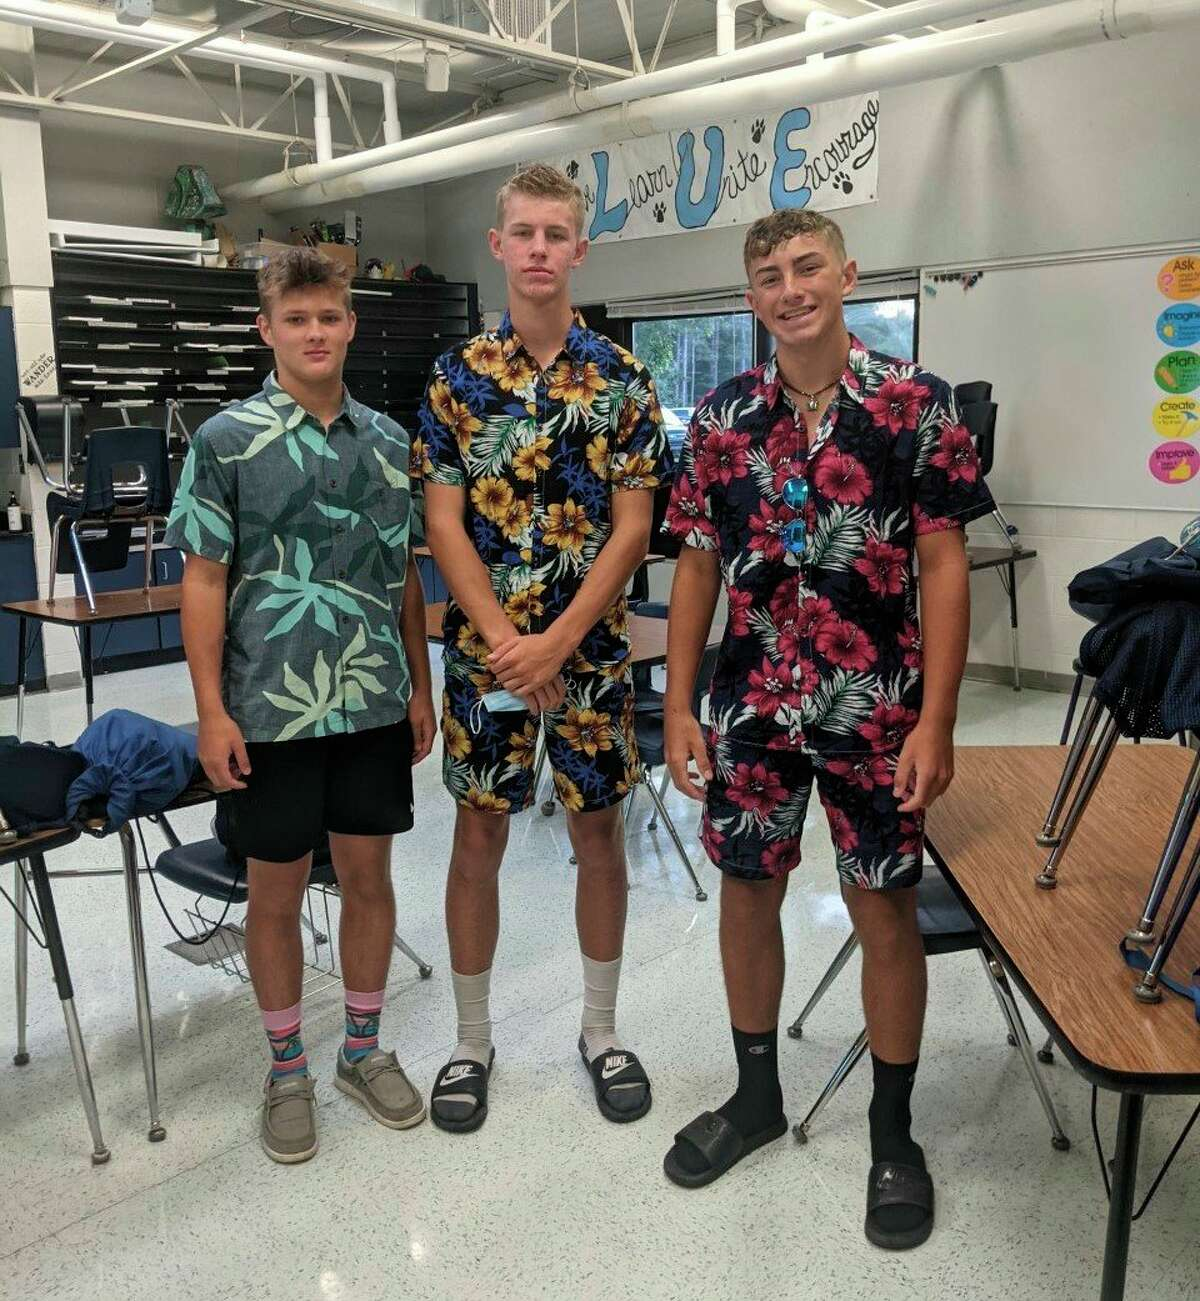 Brethren High School students Jack Meszaros, Garret Mobley and Clayton Mobley pose for a quick photo on Hawaiian Day on Monday. (Courtesy photo)